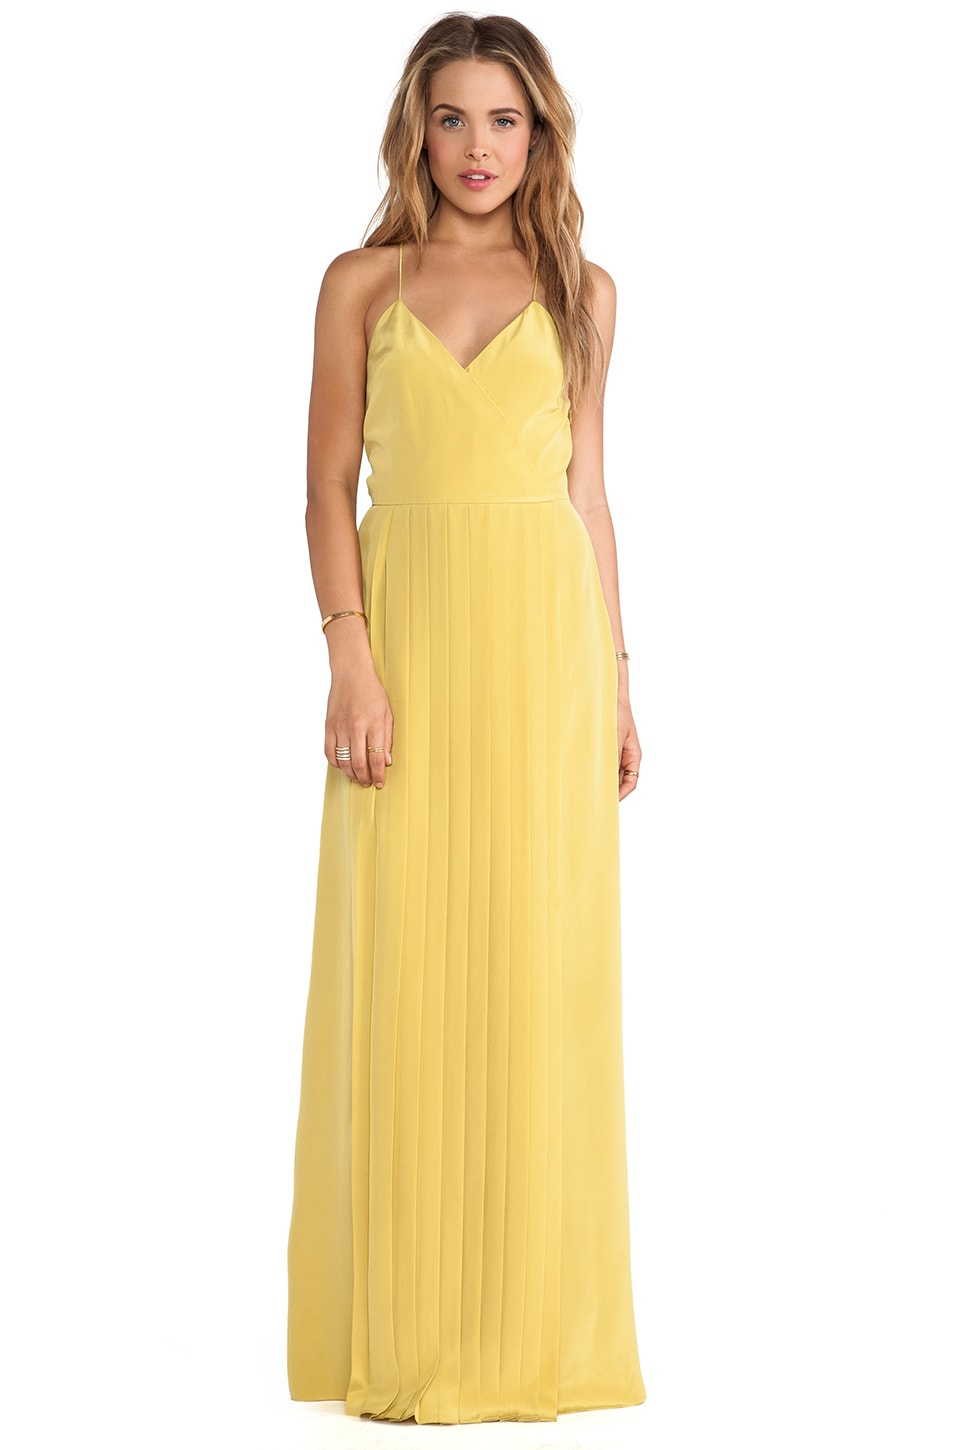 Tibi SIlk Pleated Dress in Yellow Ochre